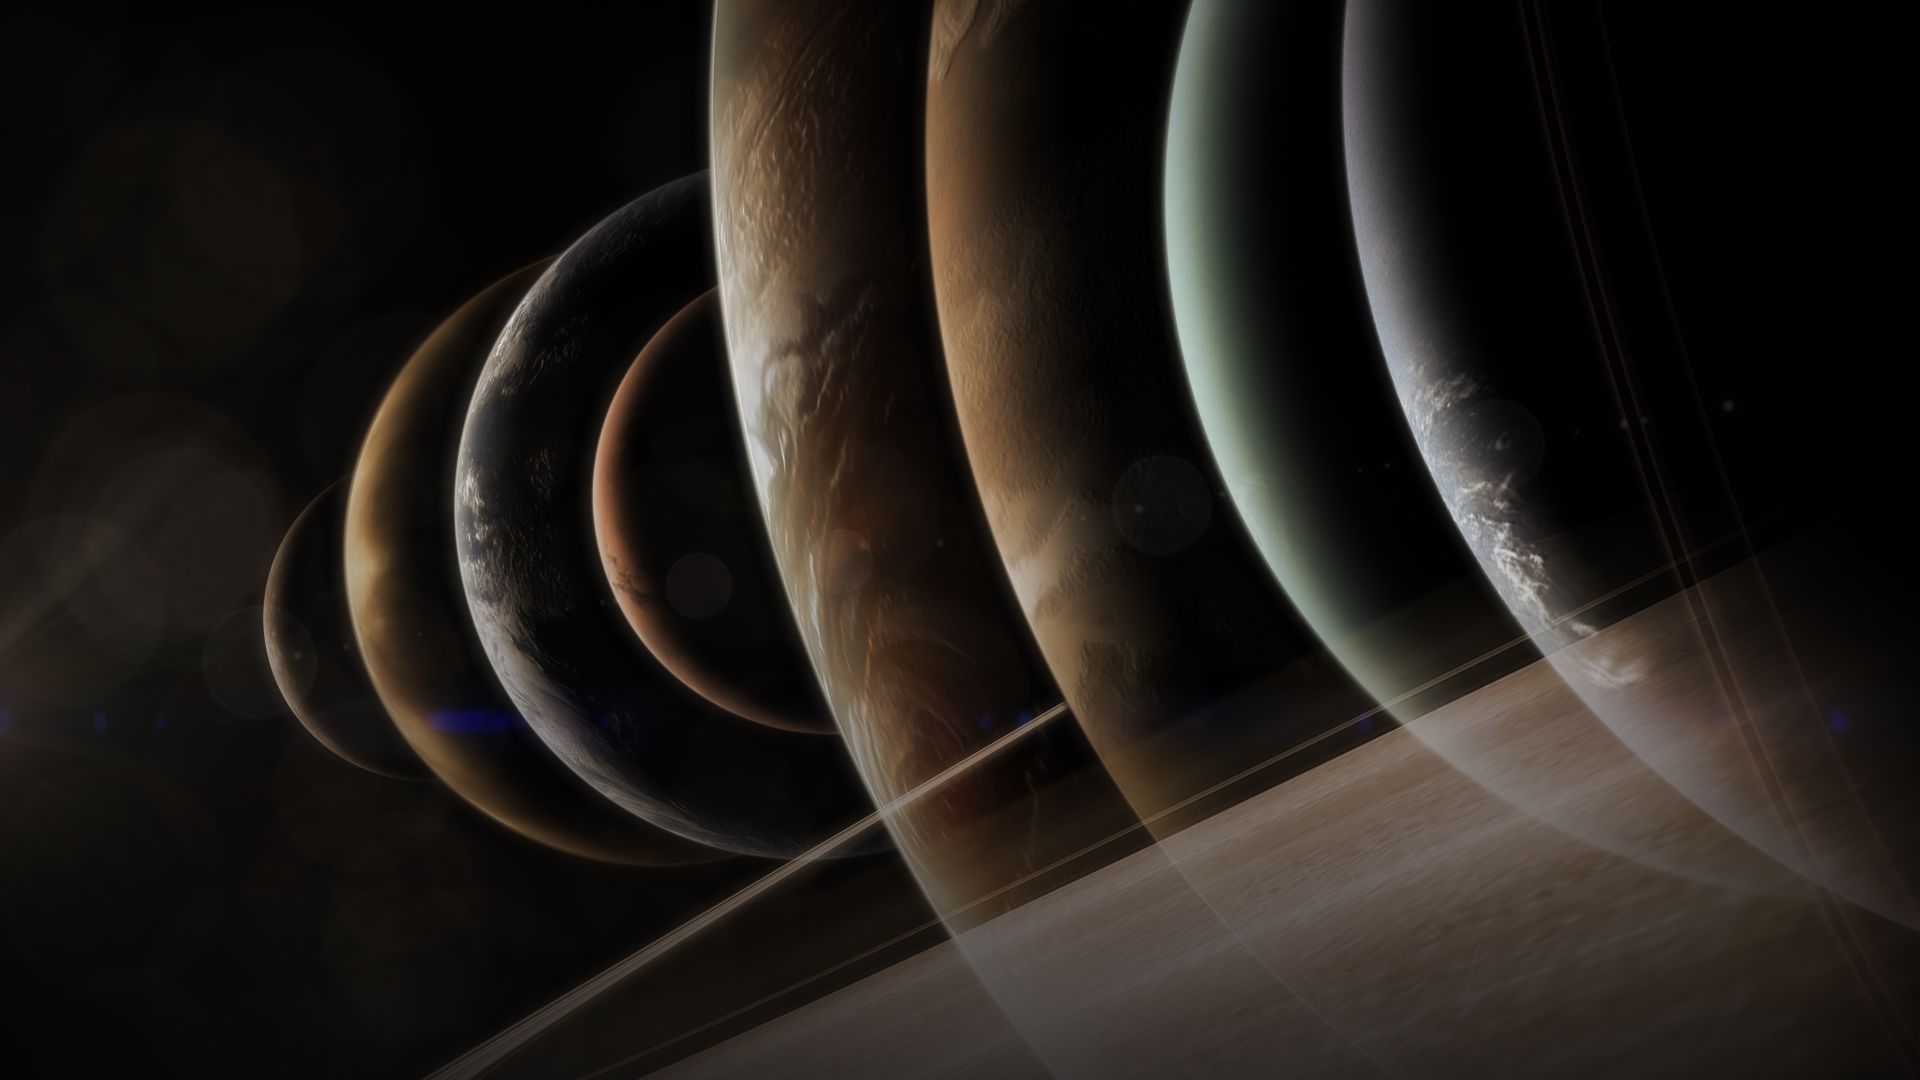 The Planets - Overview